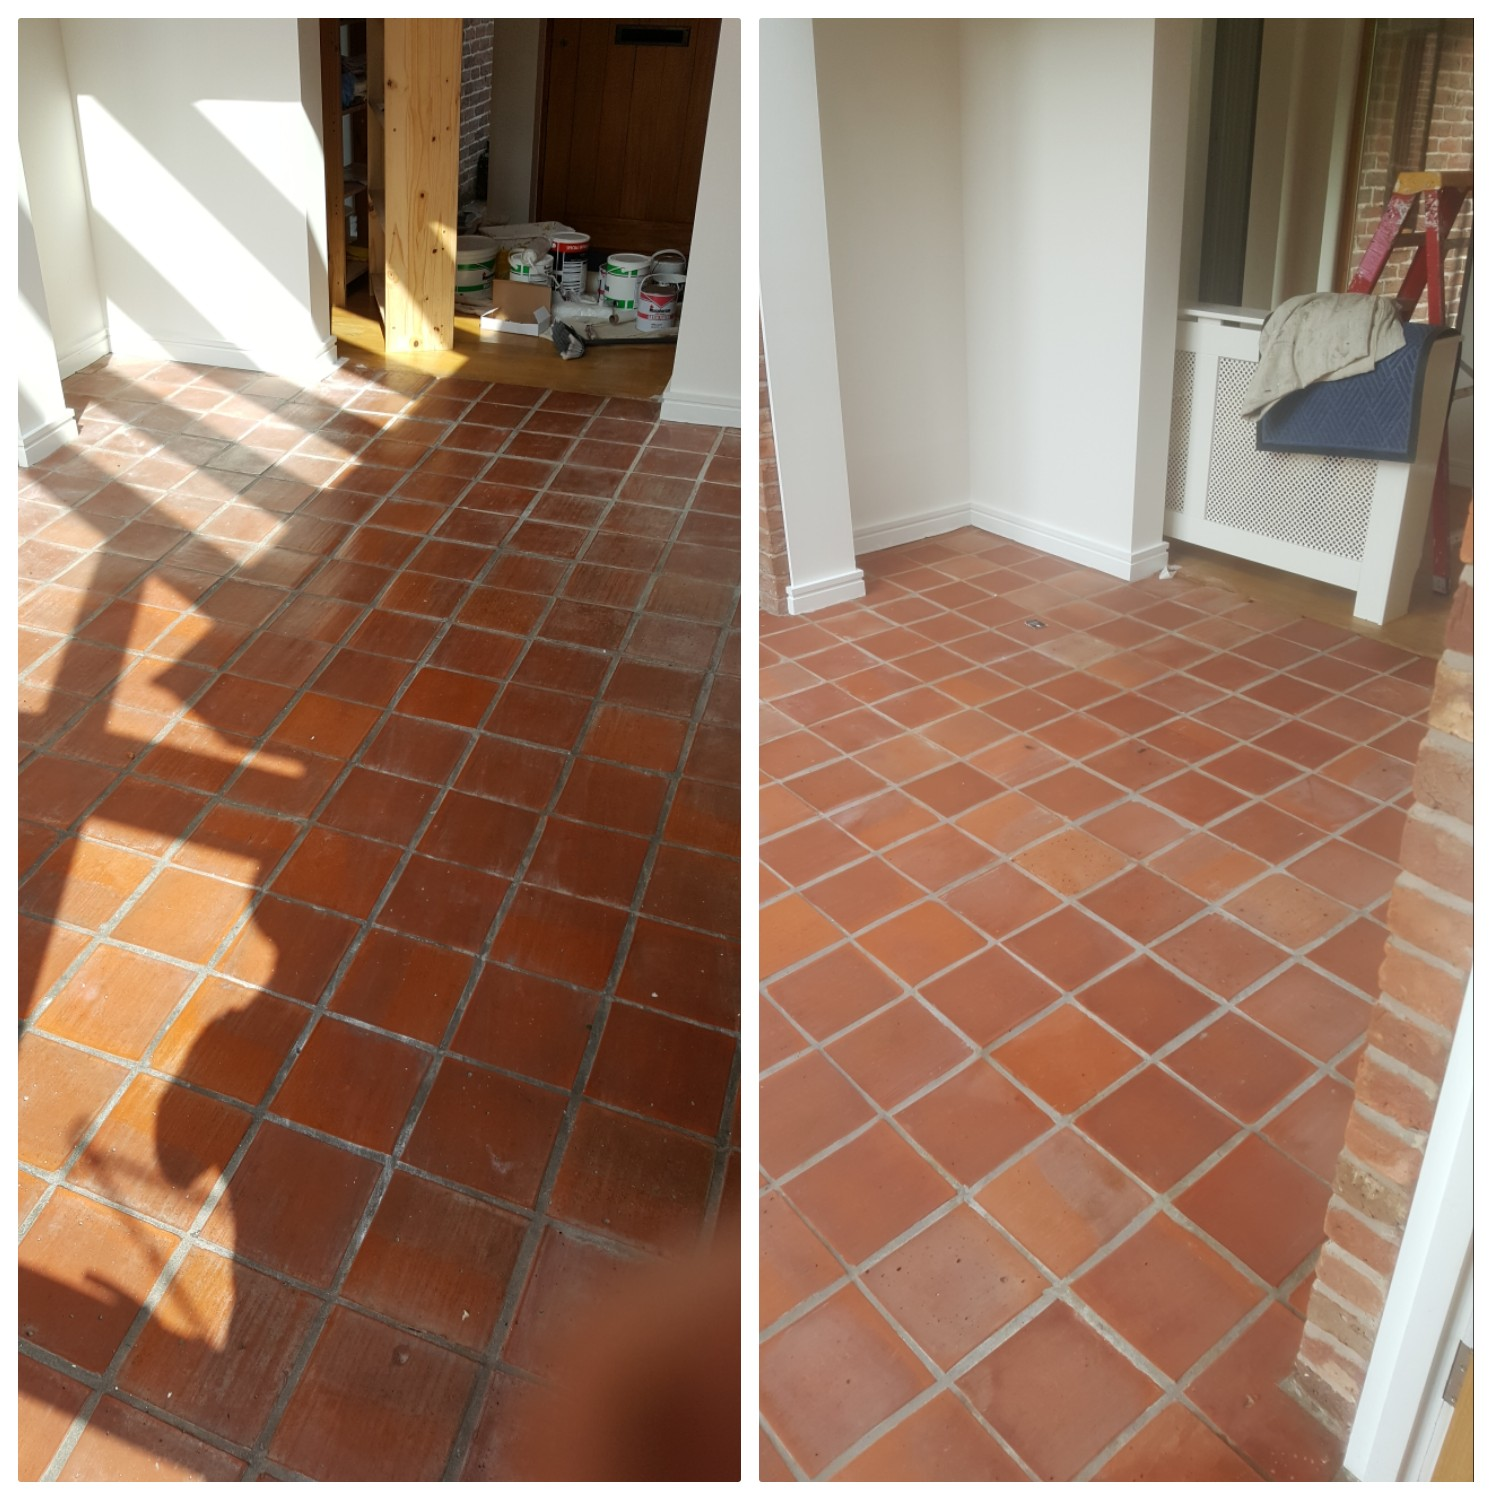 Tile cleaning in York